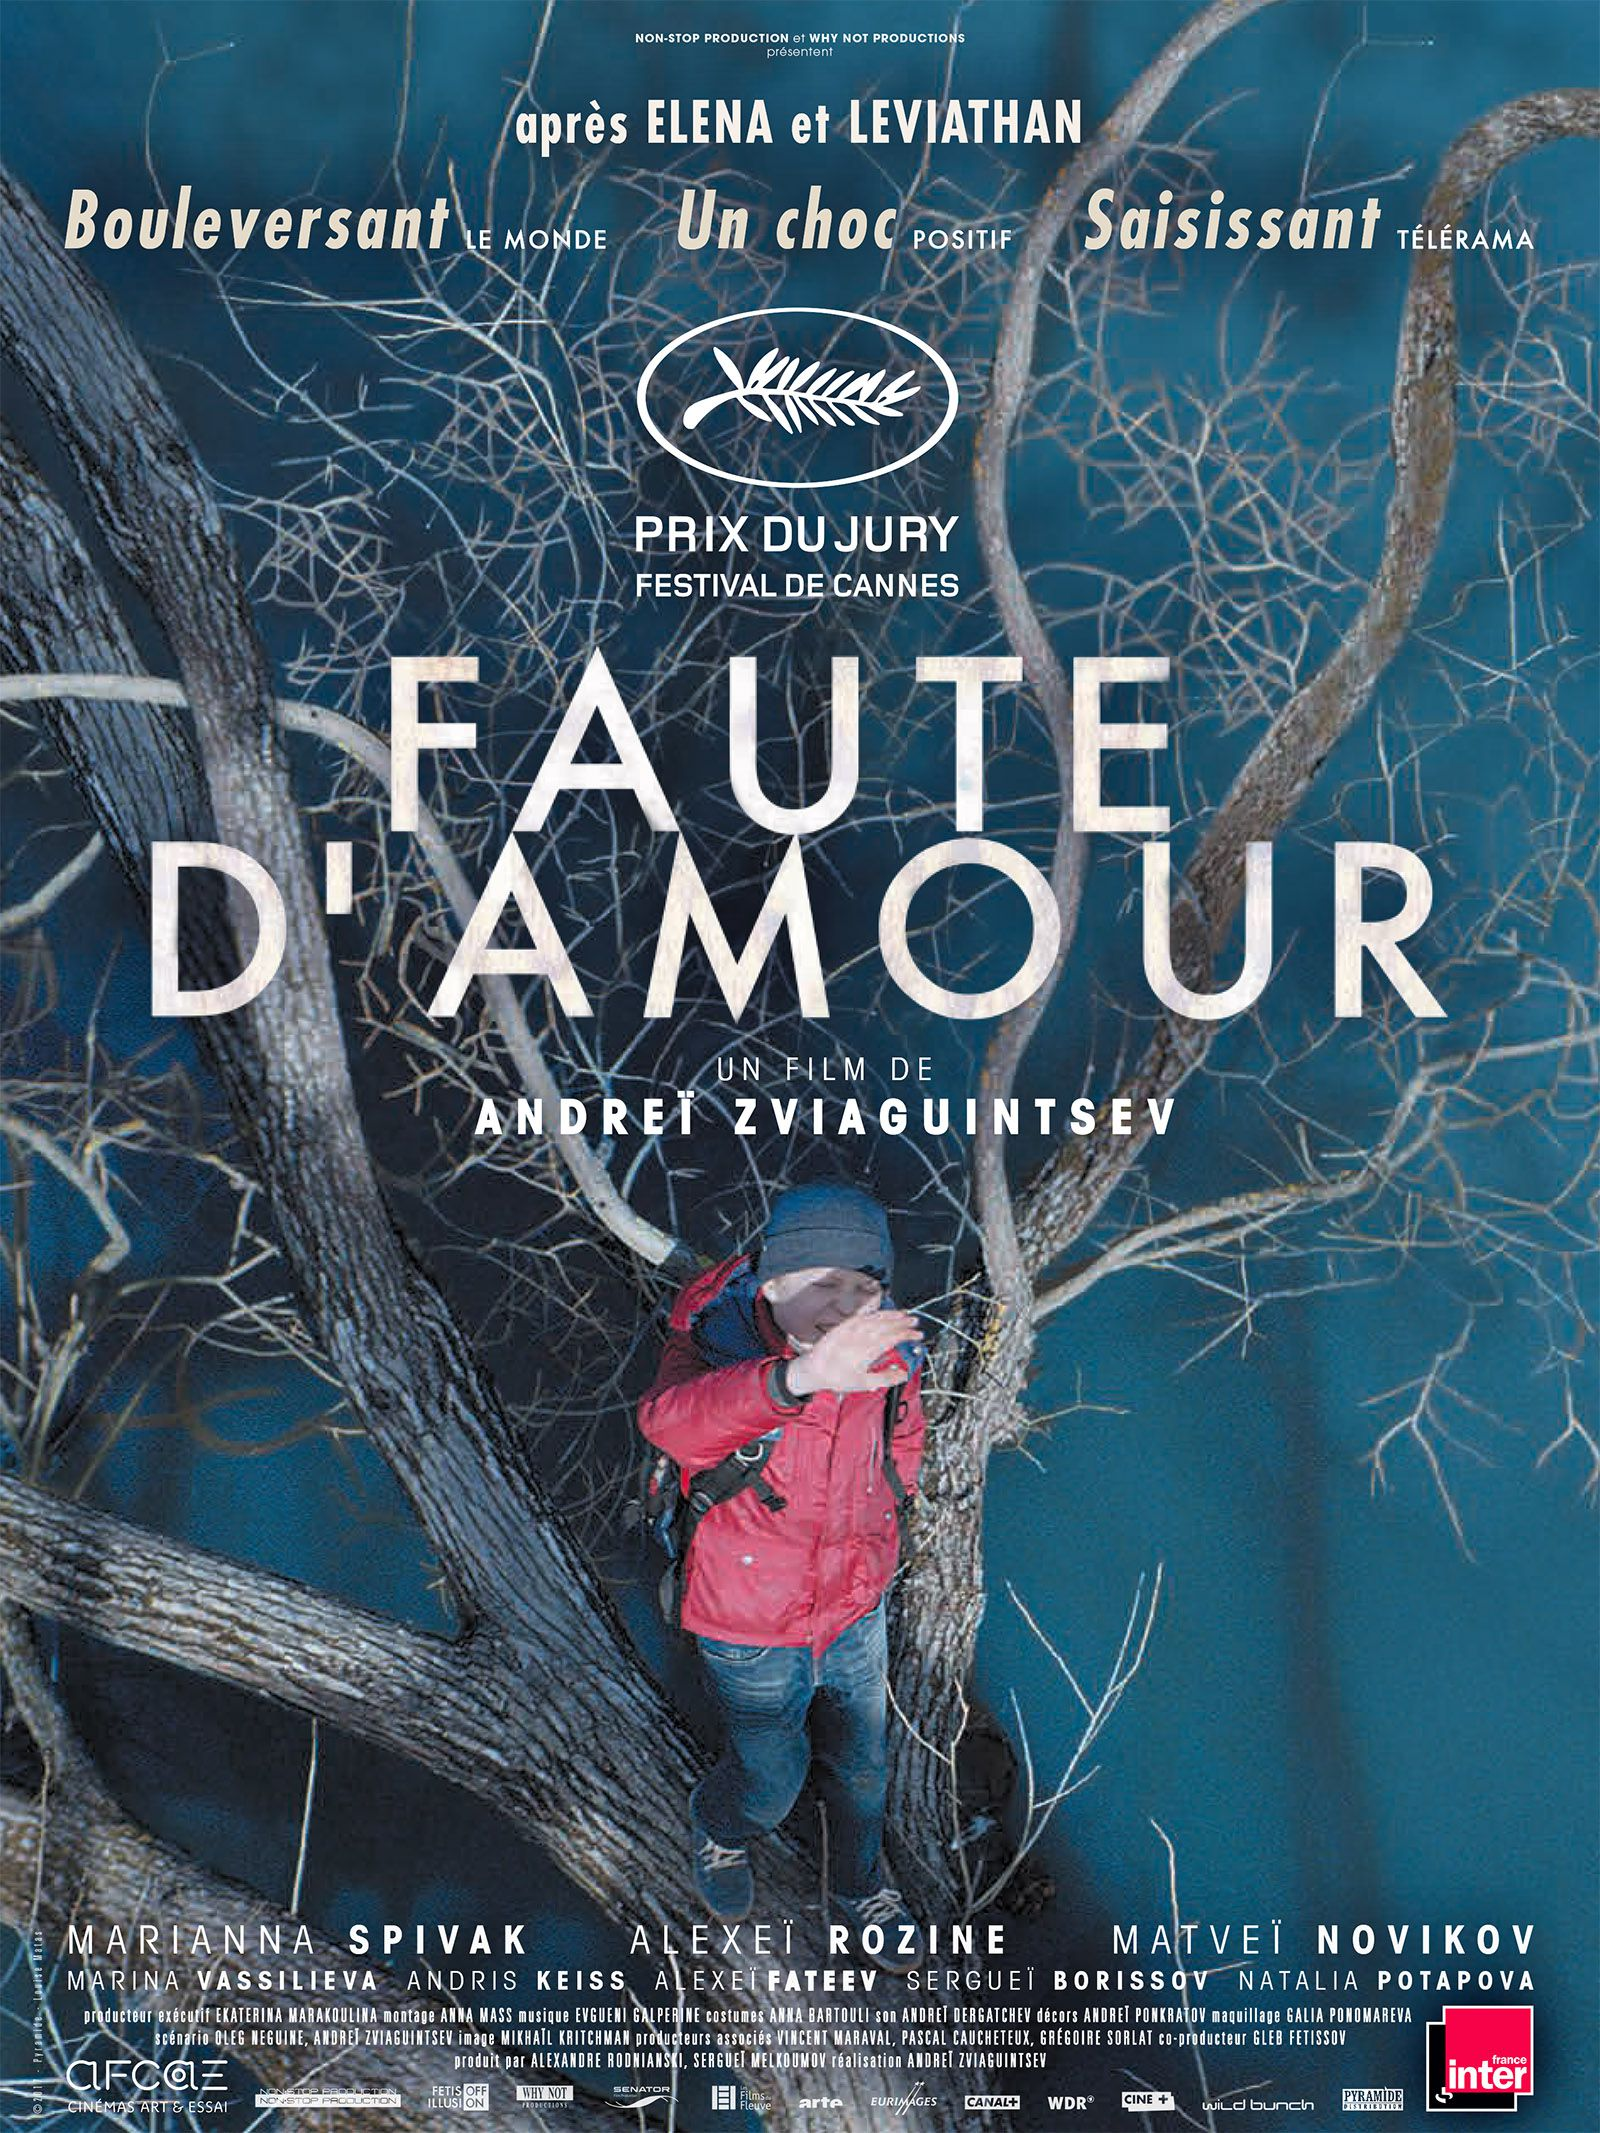 Faute d'amour - Film (2017) streaming VF gratuit complet